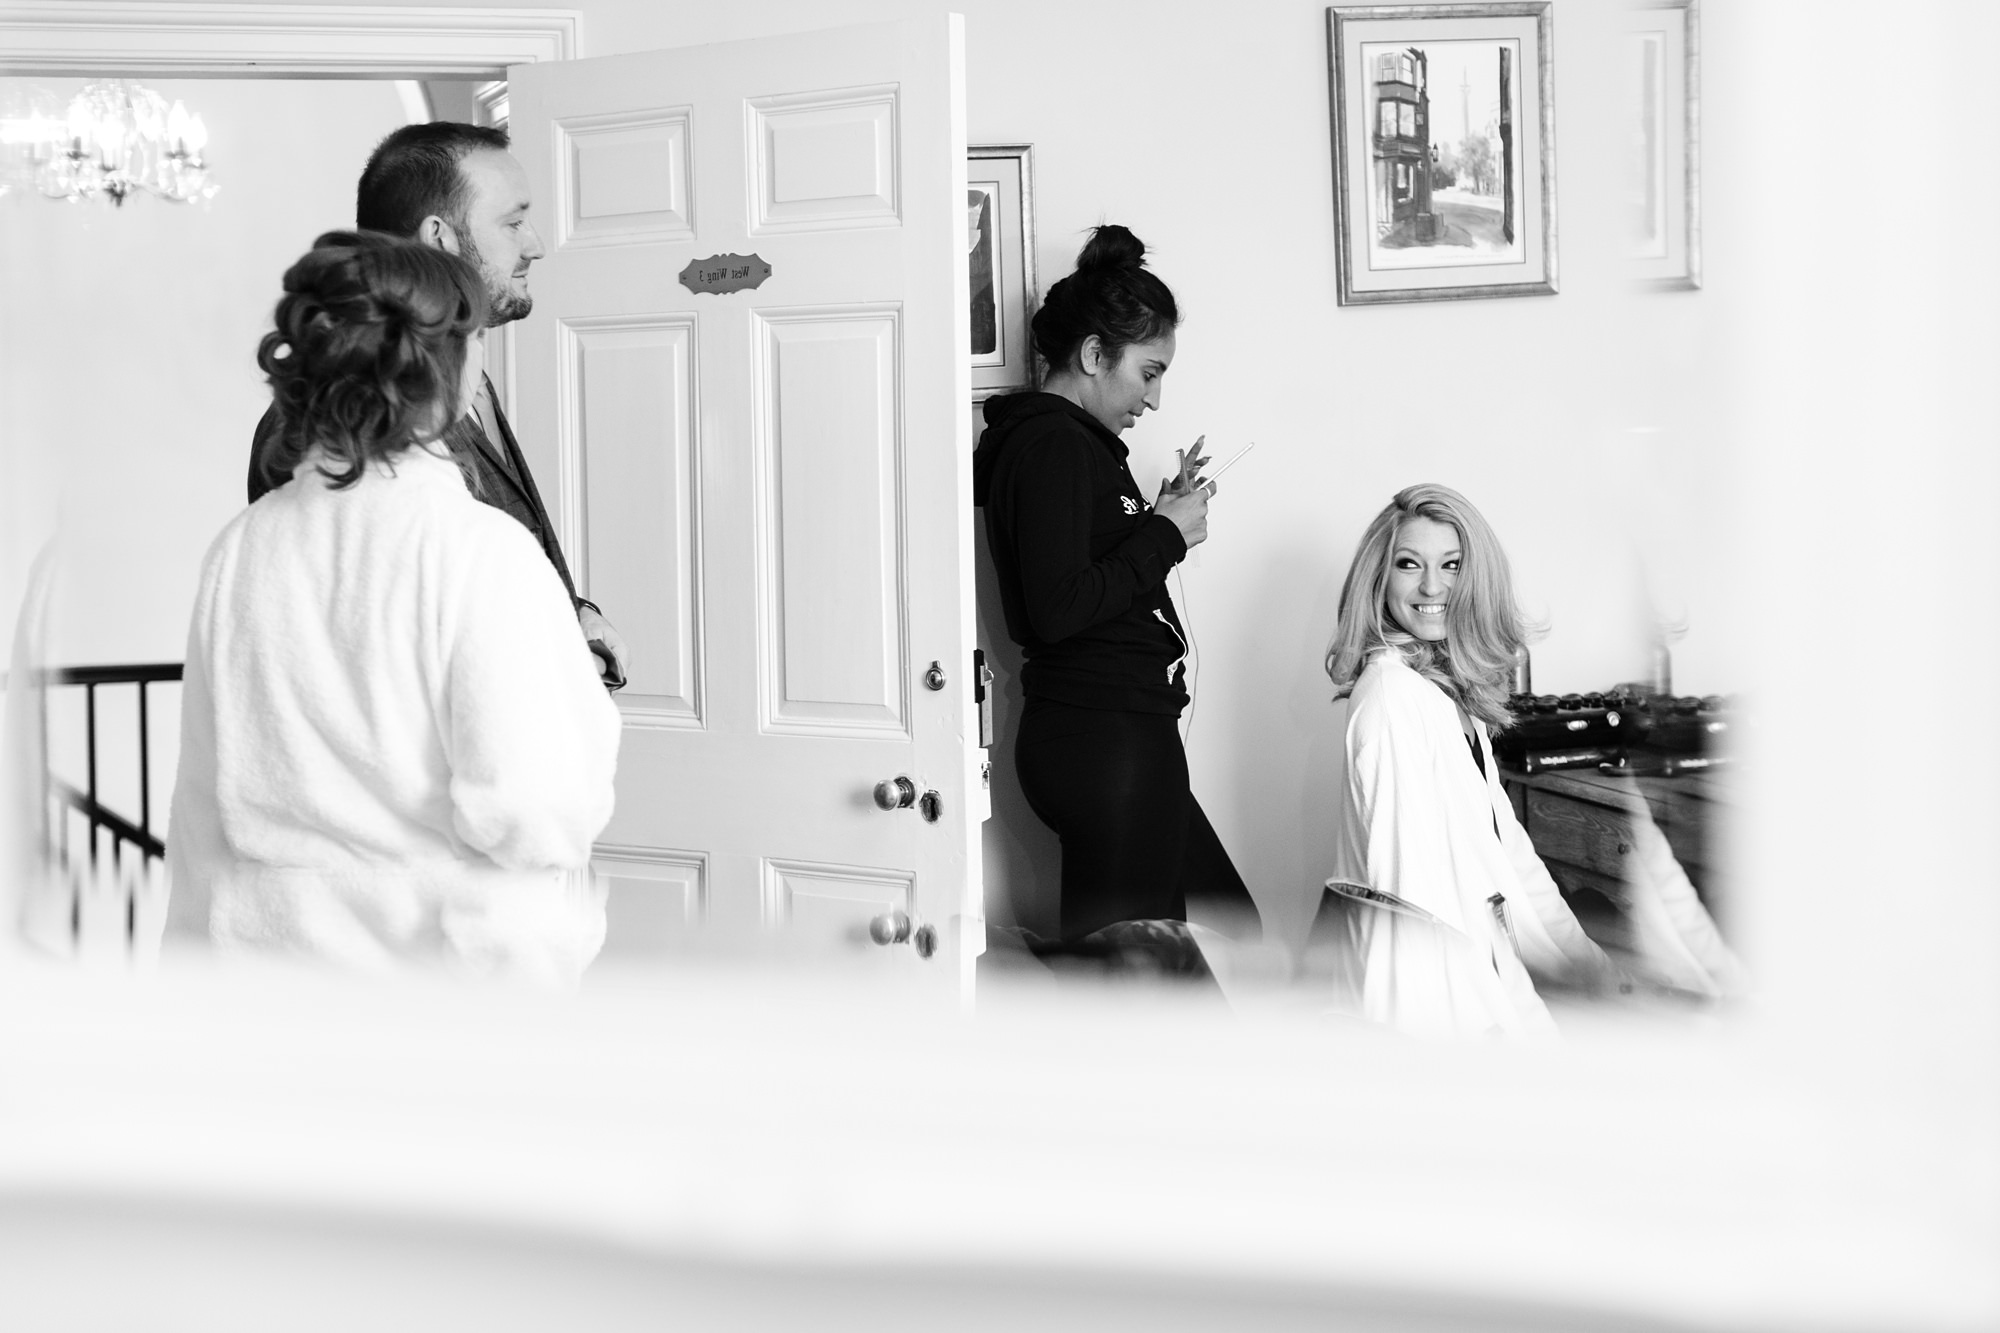 York Wedding Photography at Hornington Manor Farm mirror shot of bride getting ready